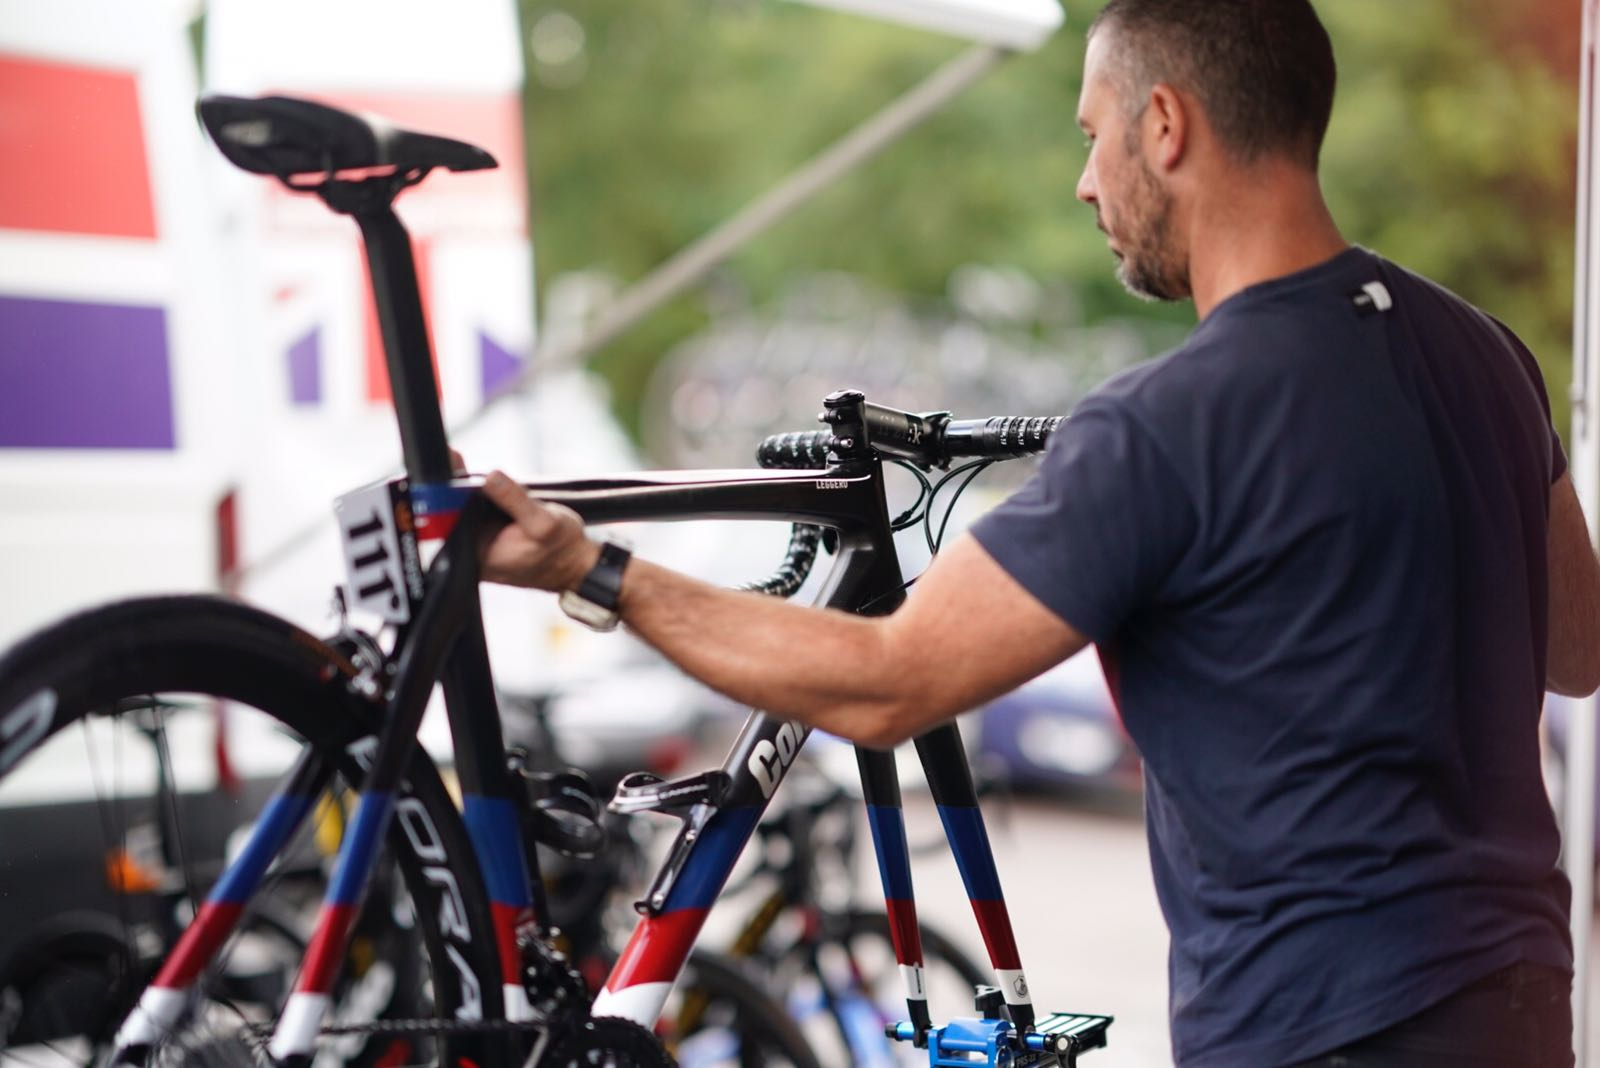 JLT Condor Team bicycles are available for purchase